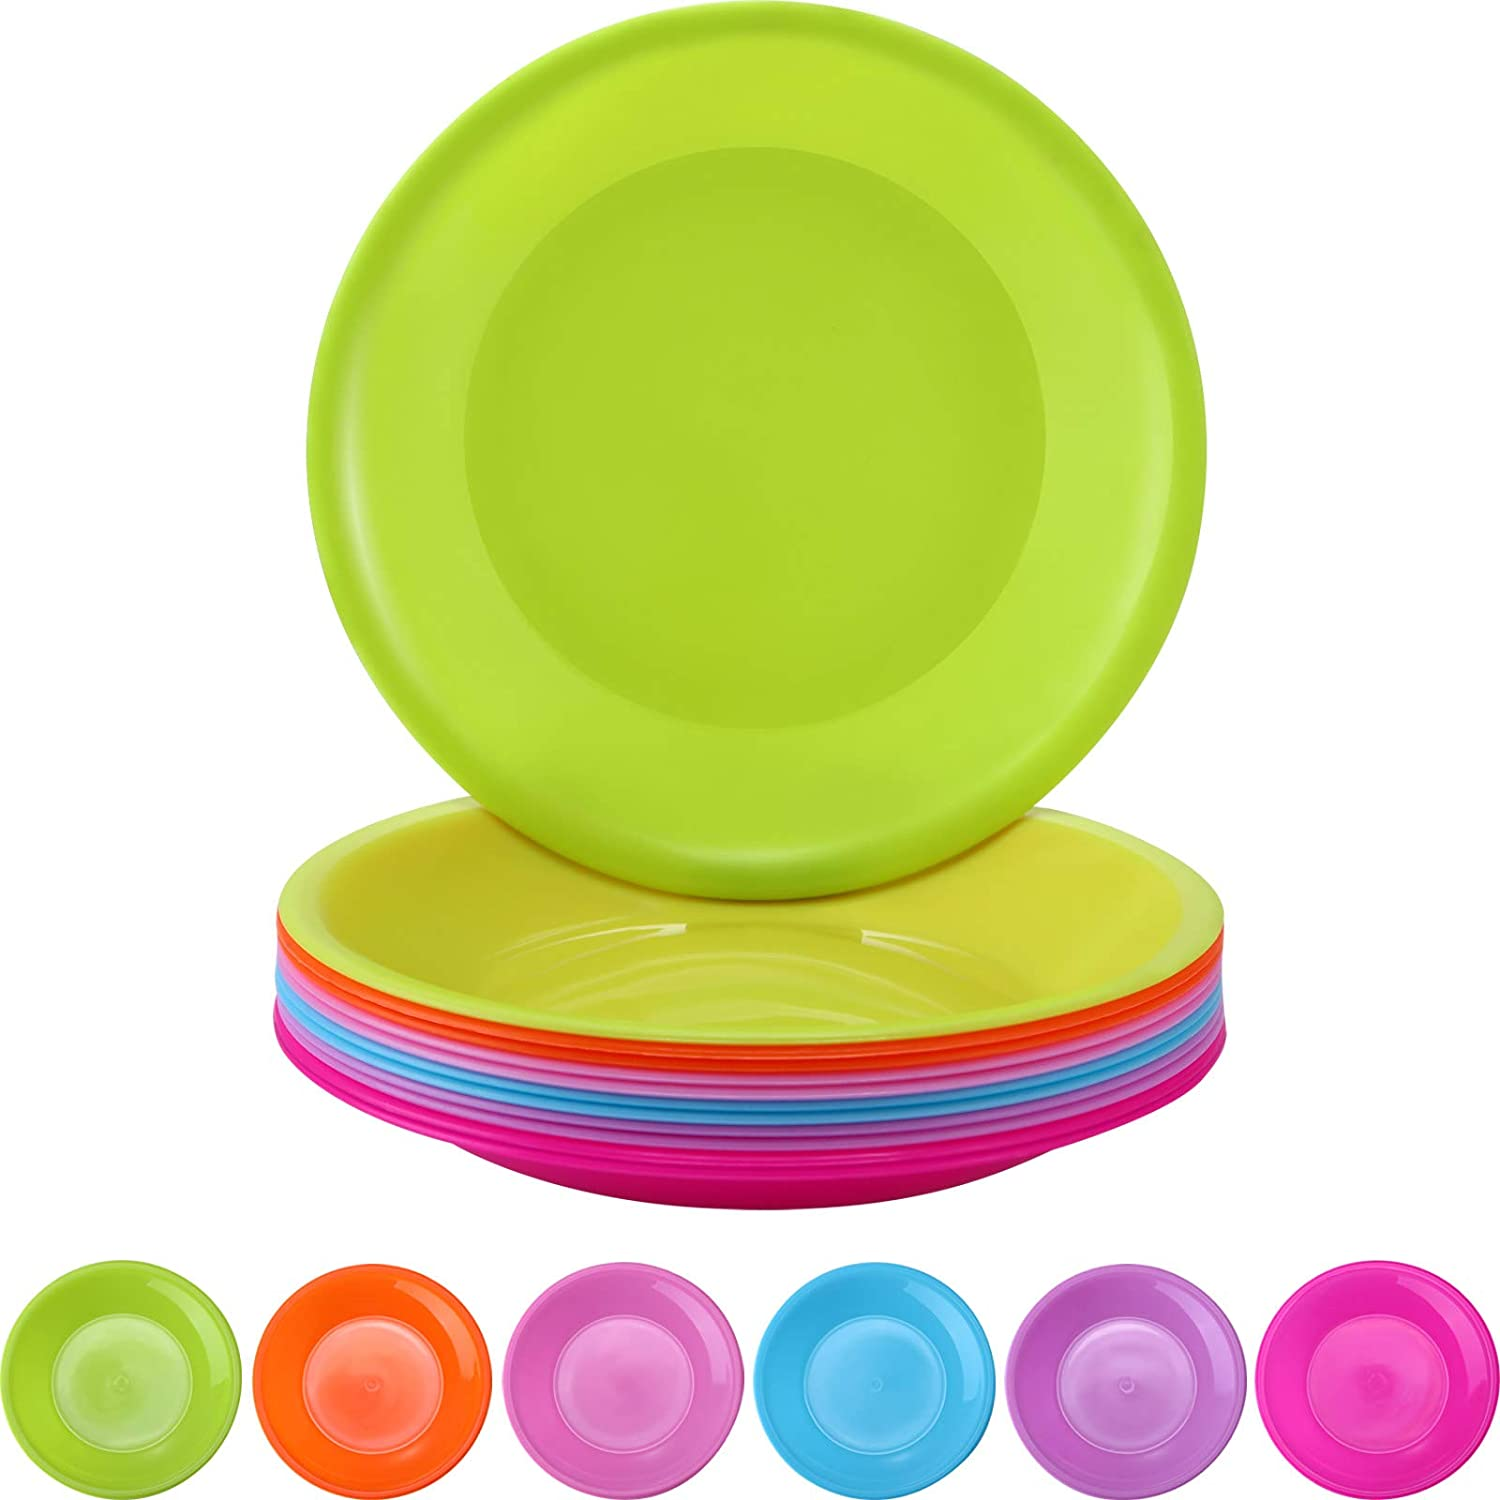 12 Pieces Colorful Plate Set Small Snack Plastic Pi Plates Max 57% depot OFF